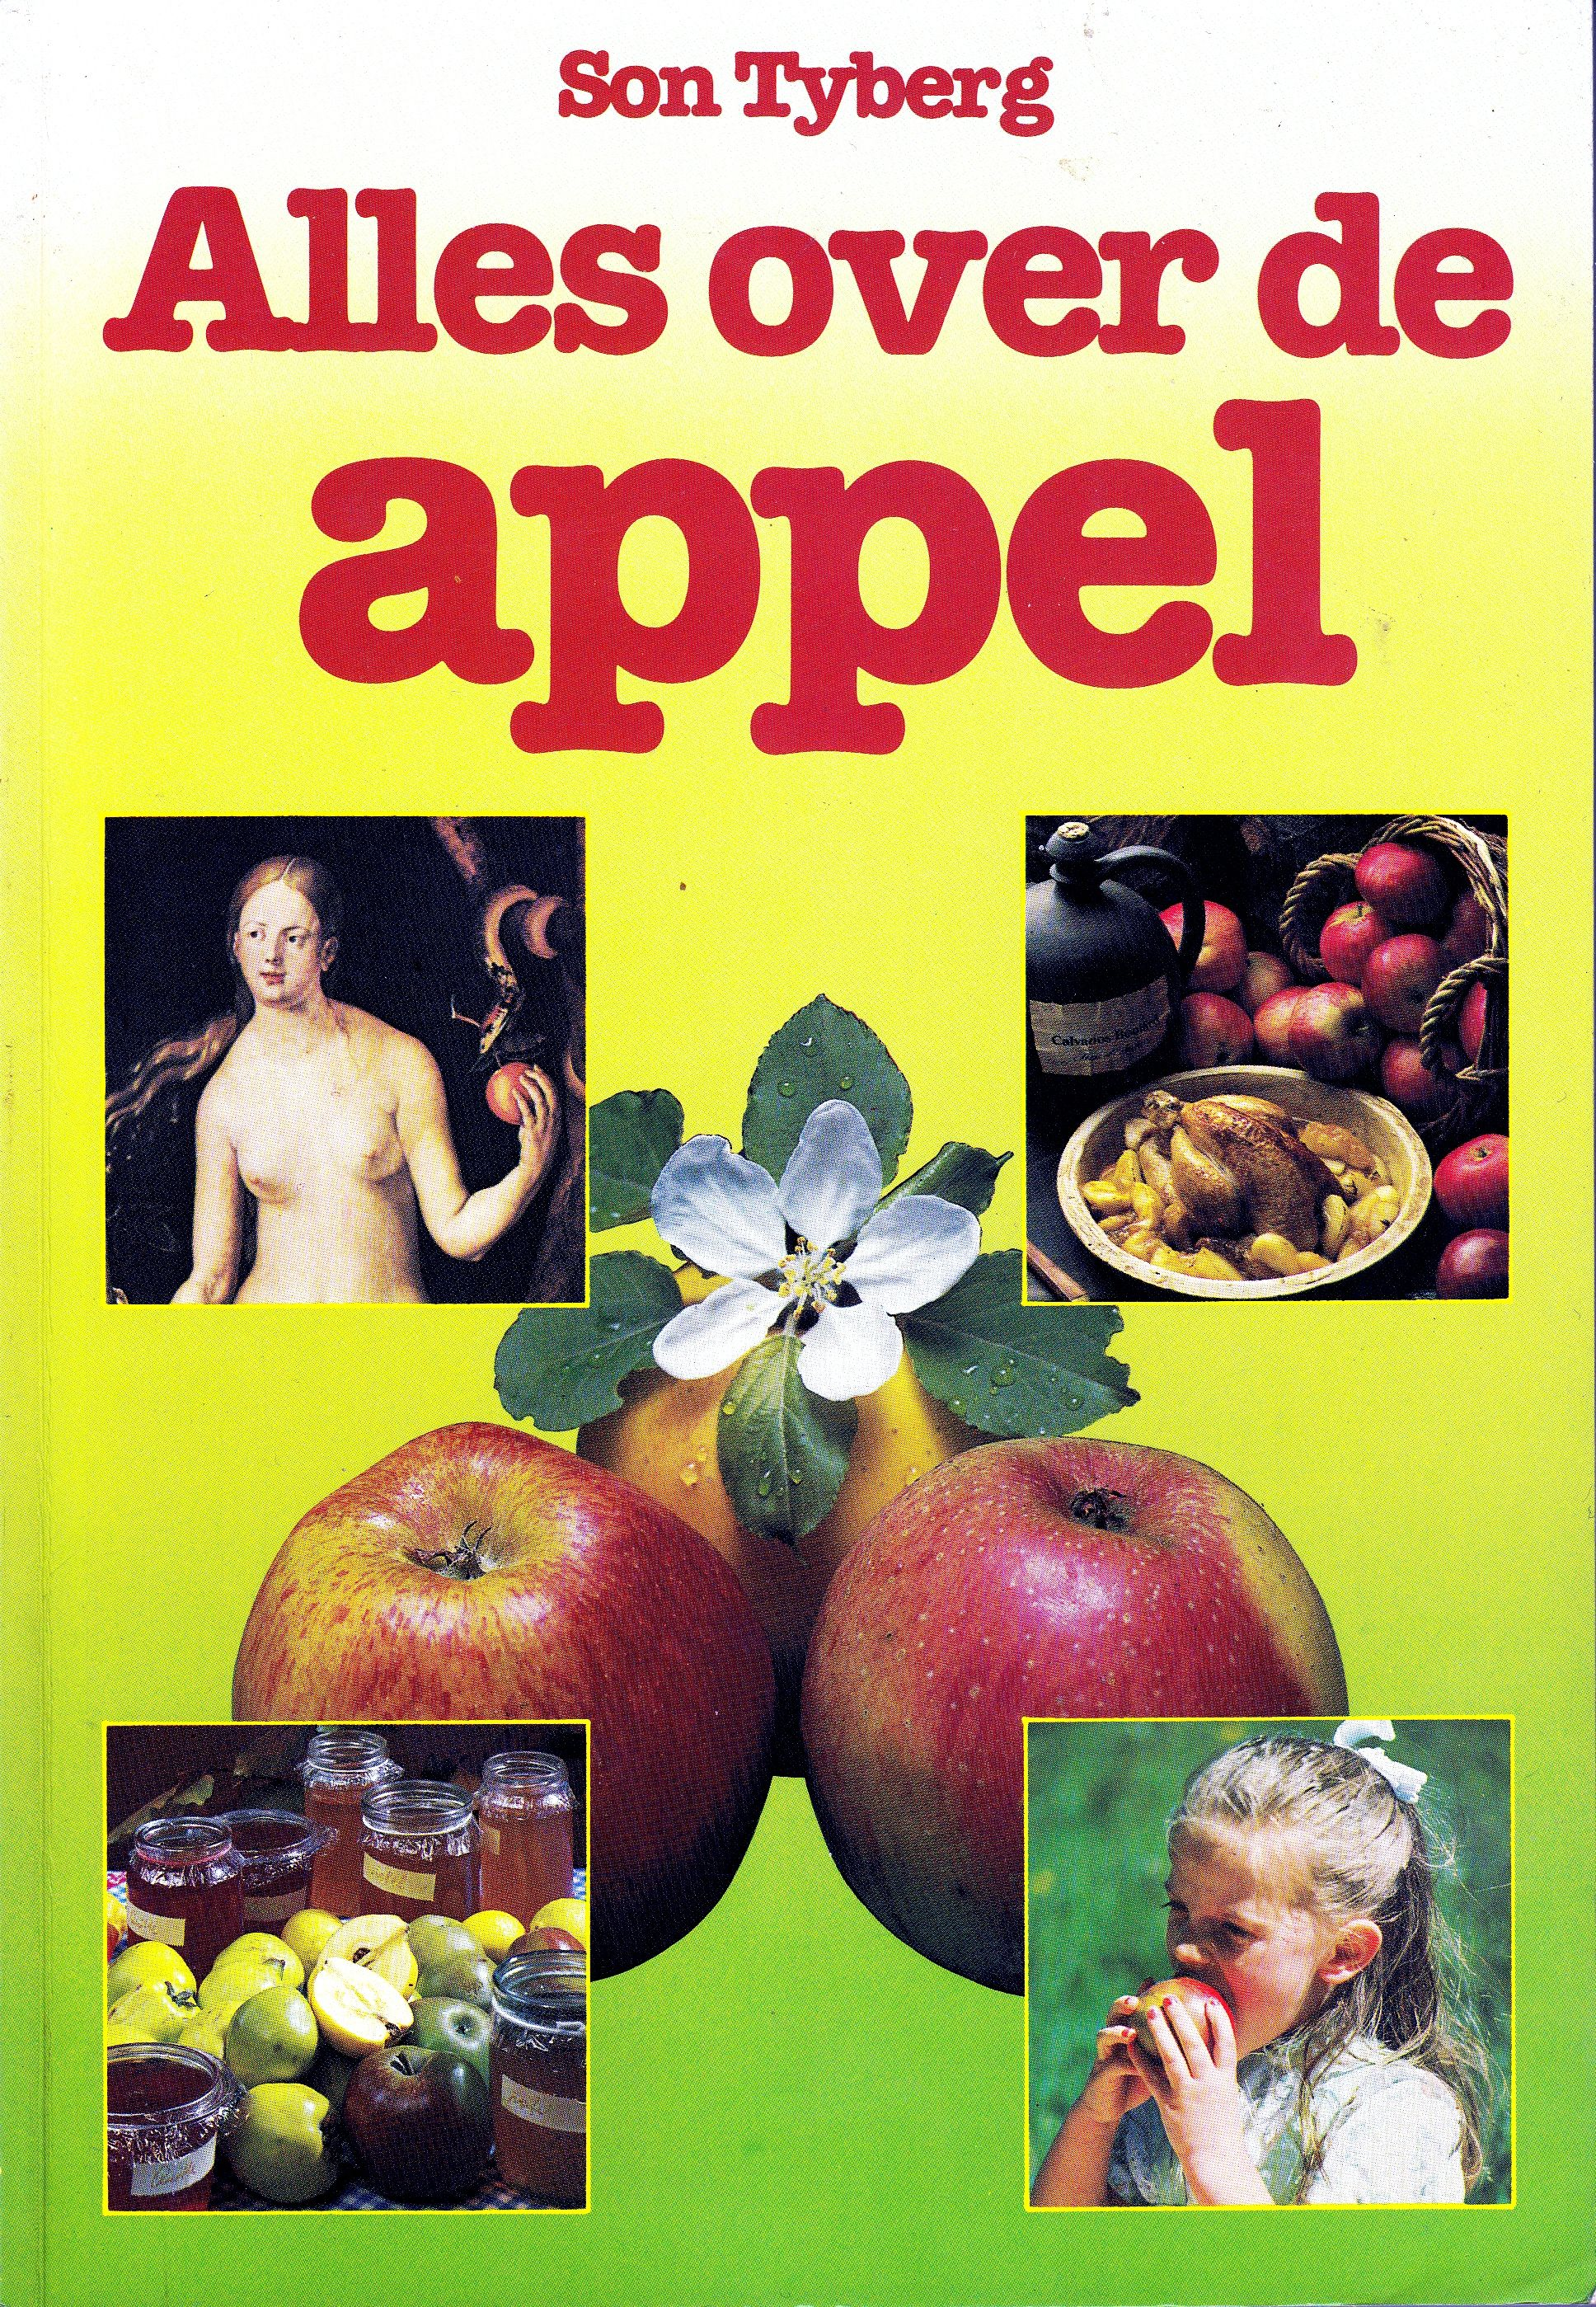 Alles over de Appel - Son Tyberg - 1984